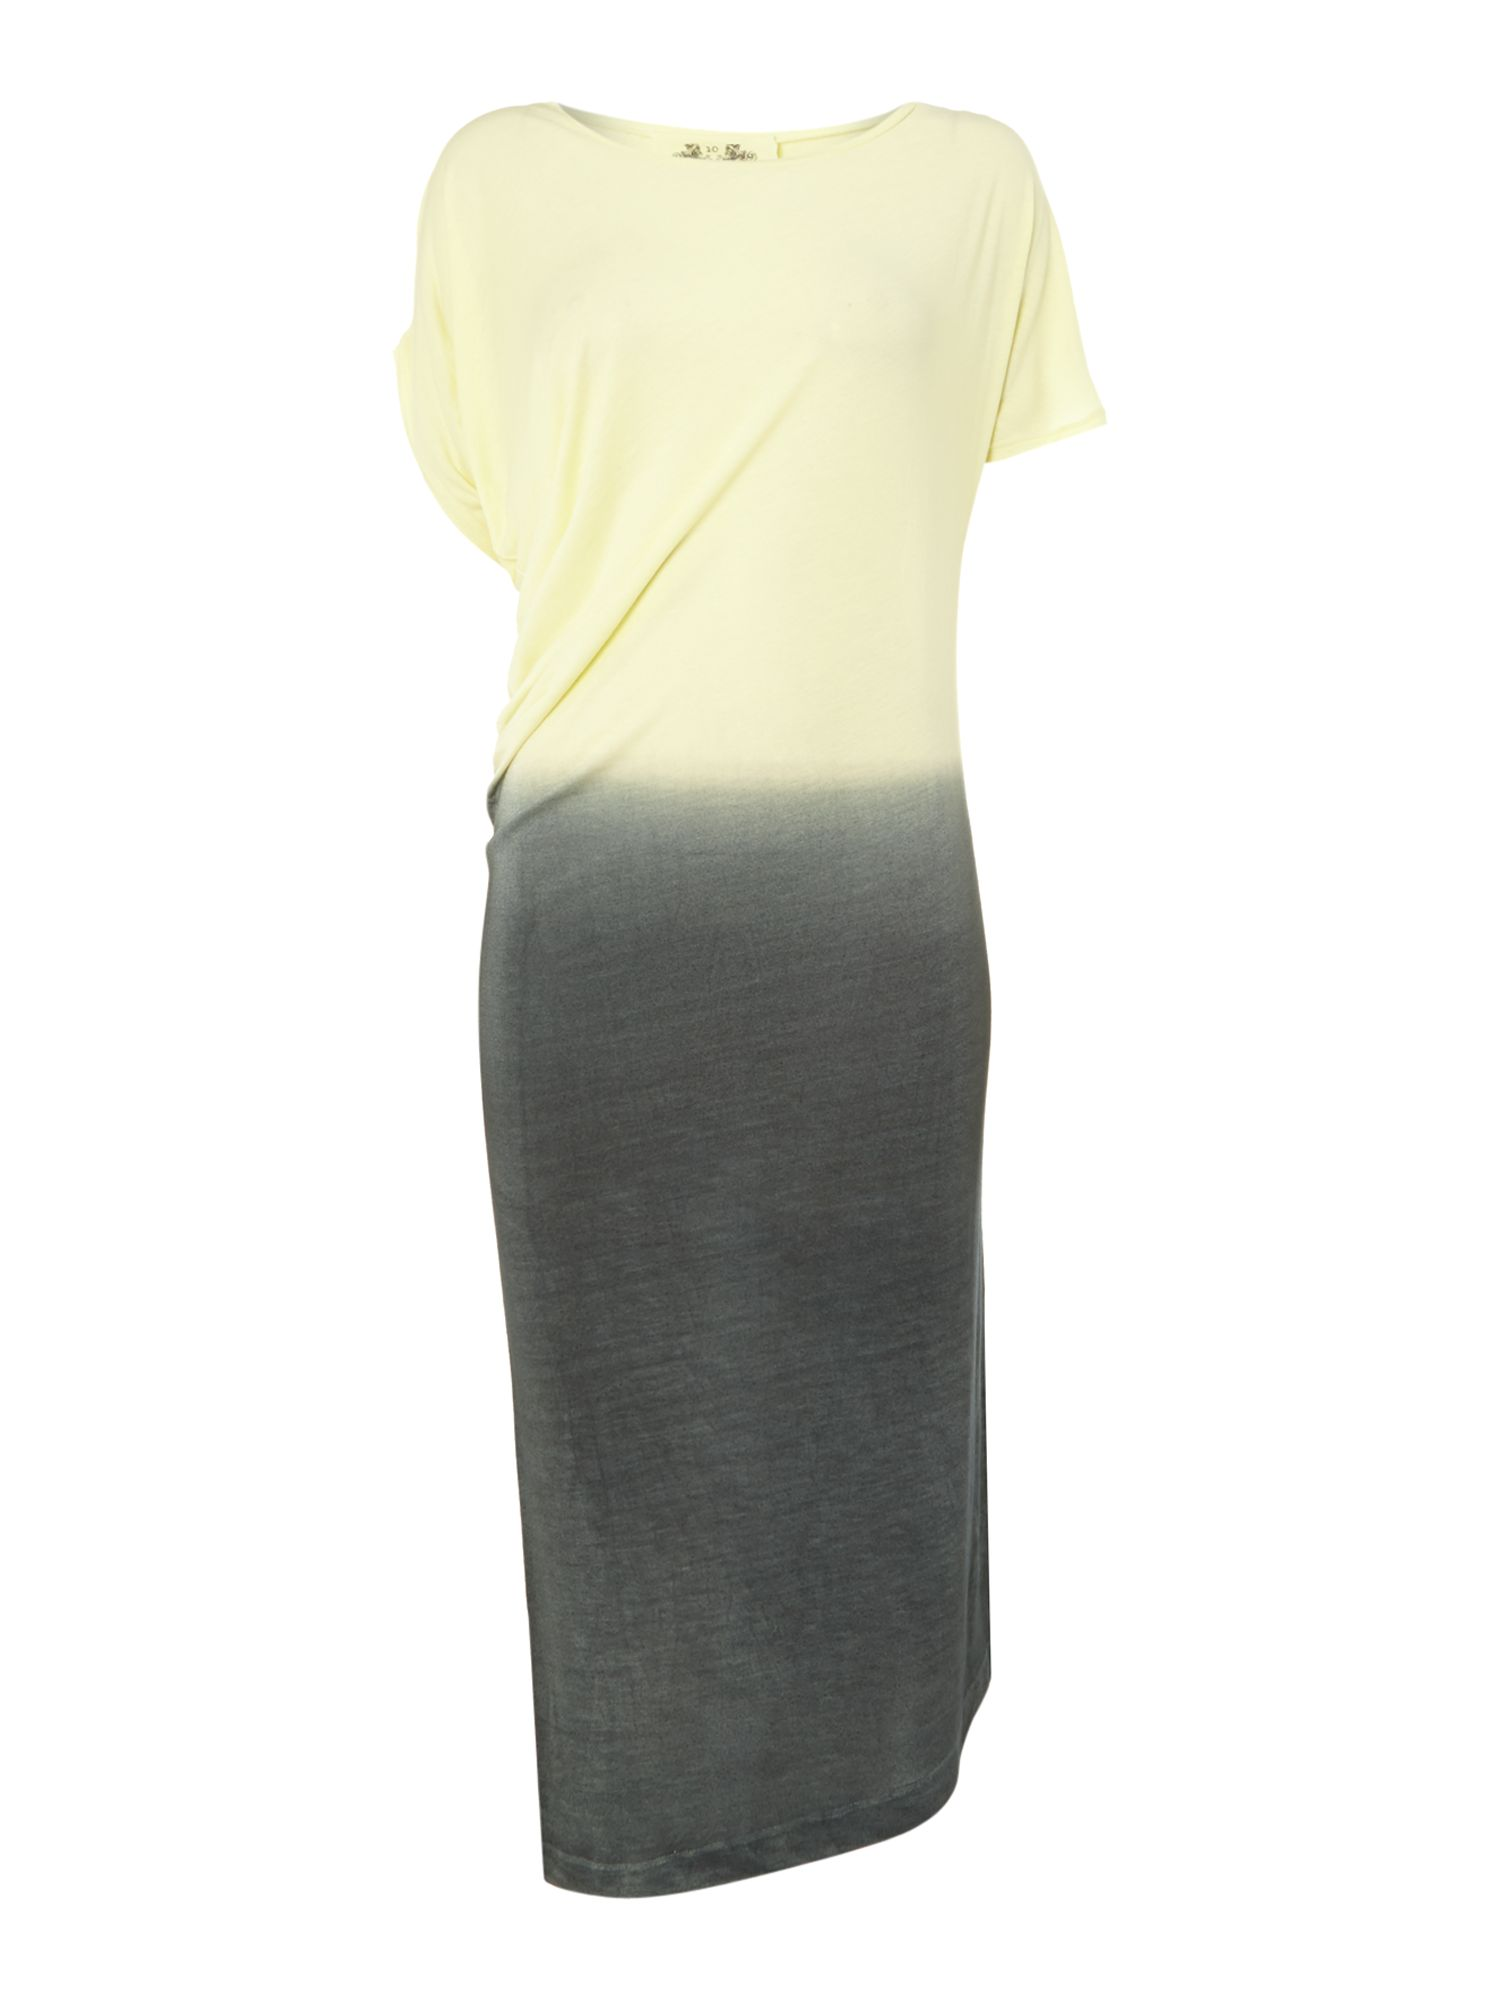 Asymmetric dip dye jersey dress